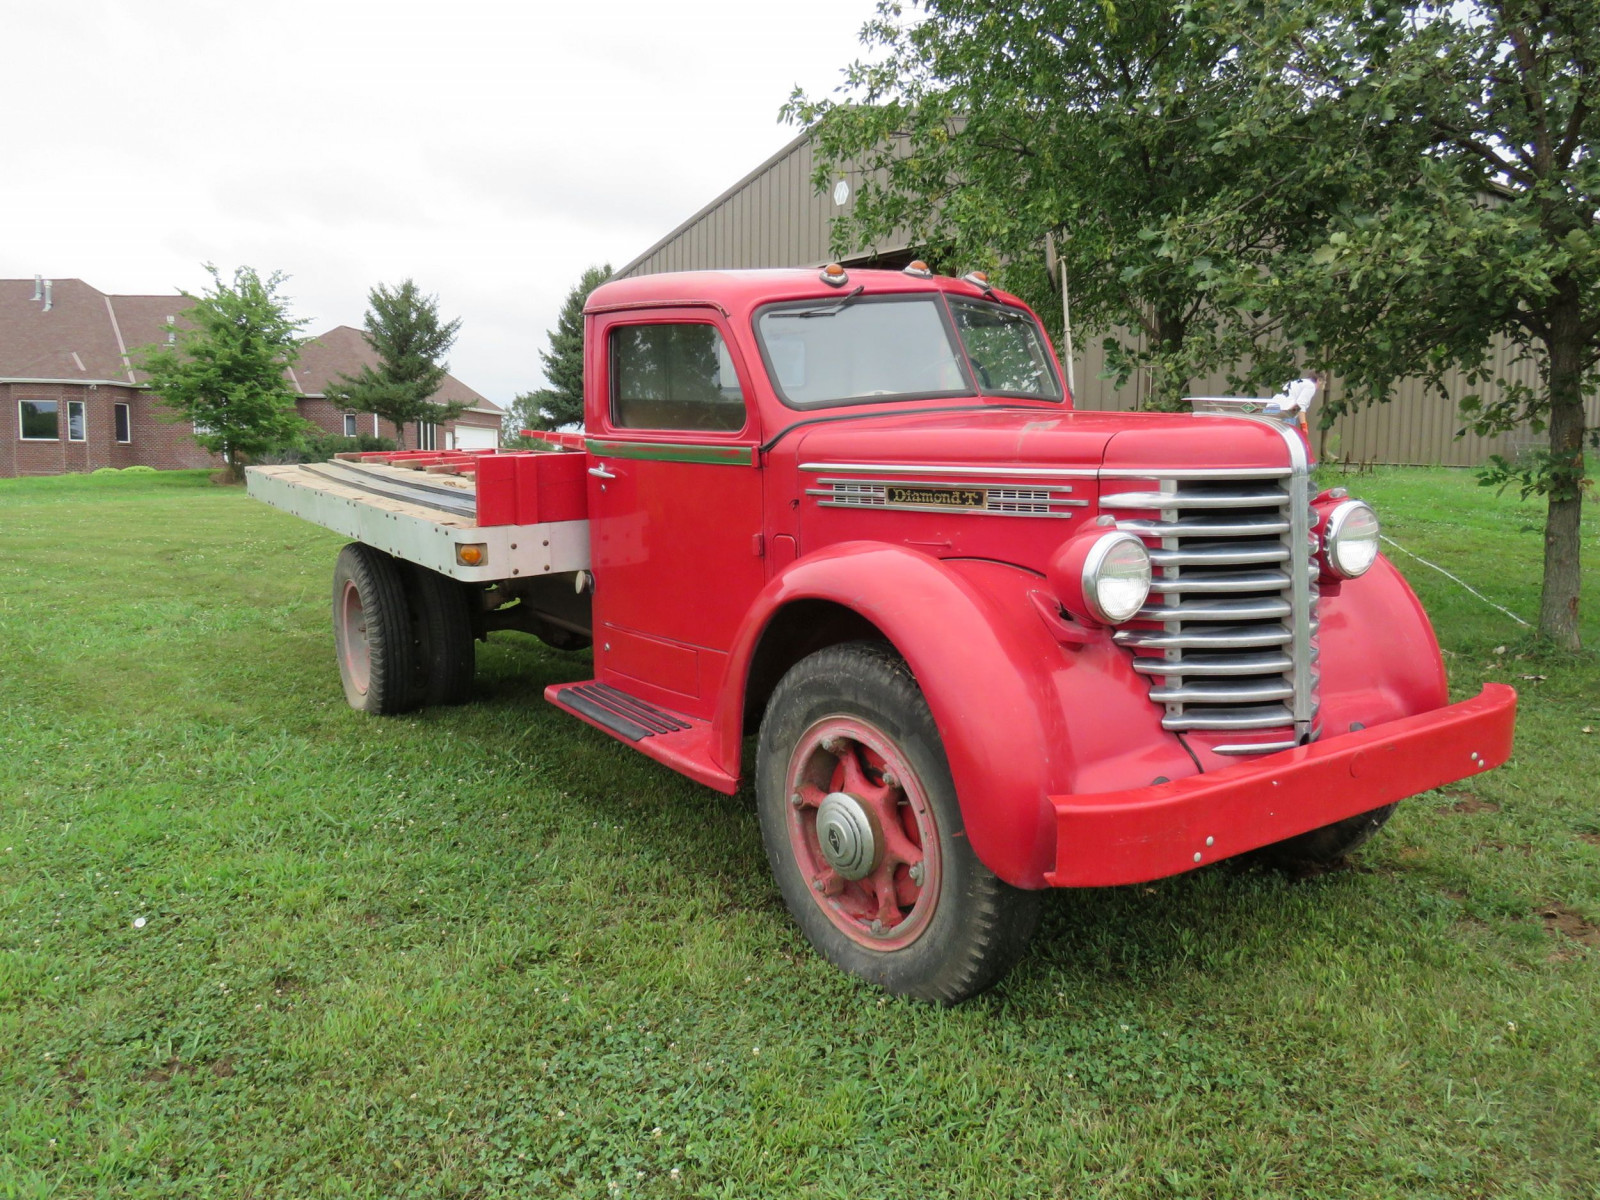 1945 Diamond T Truck - Image 3